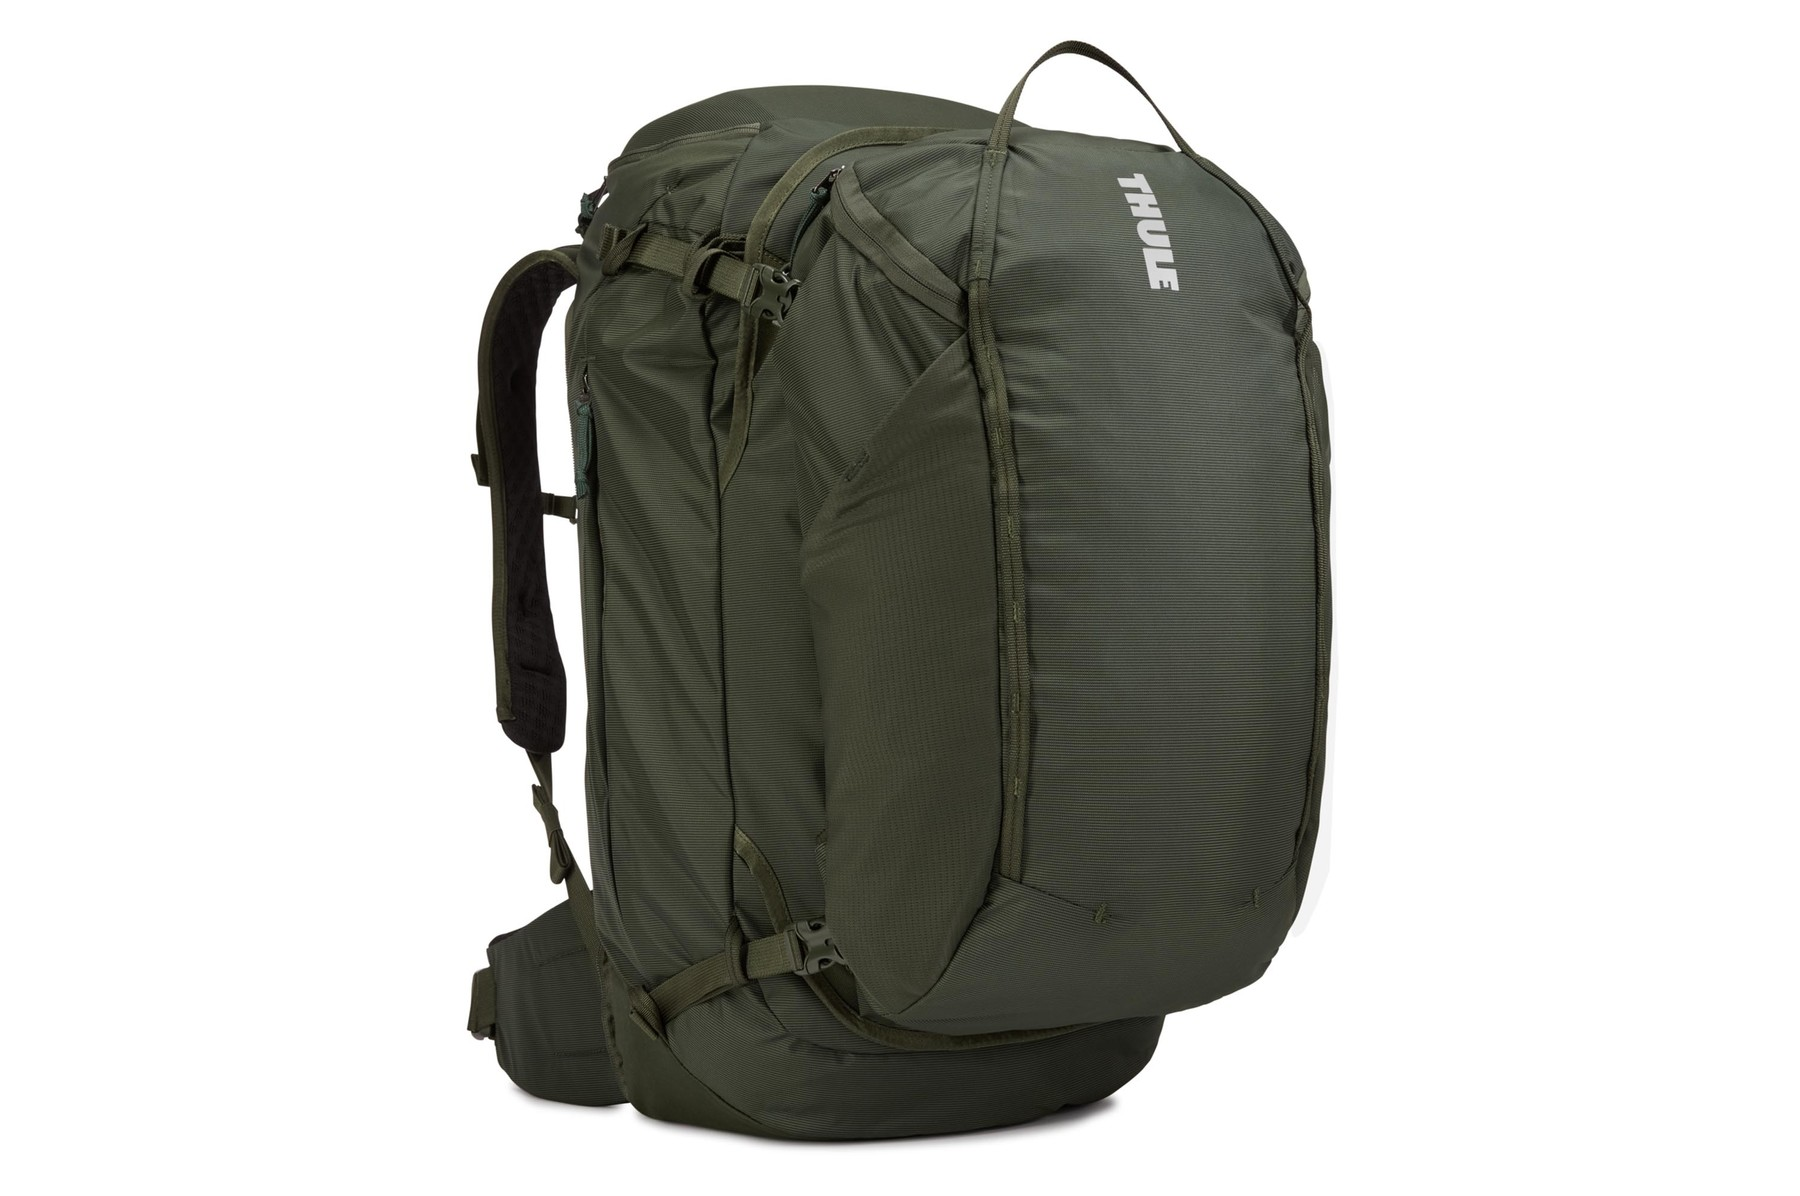 Thule Landmark 70L TLPM170 DarkForest